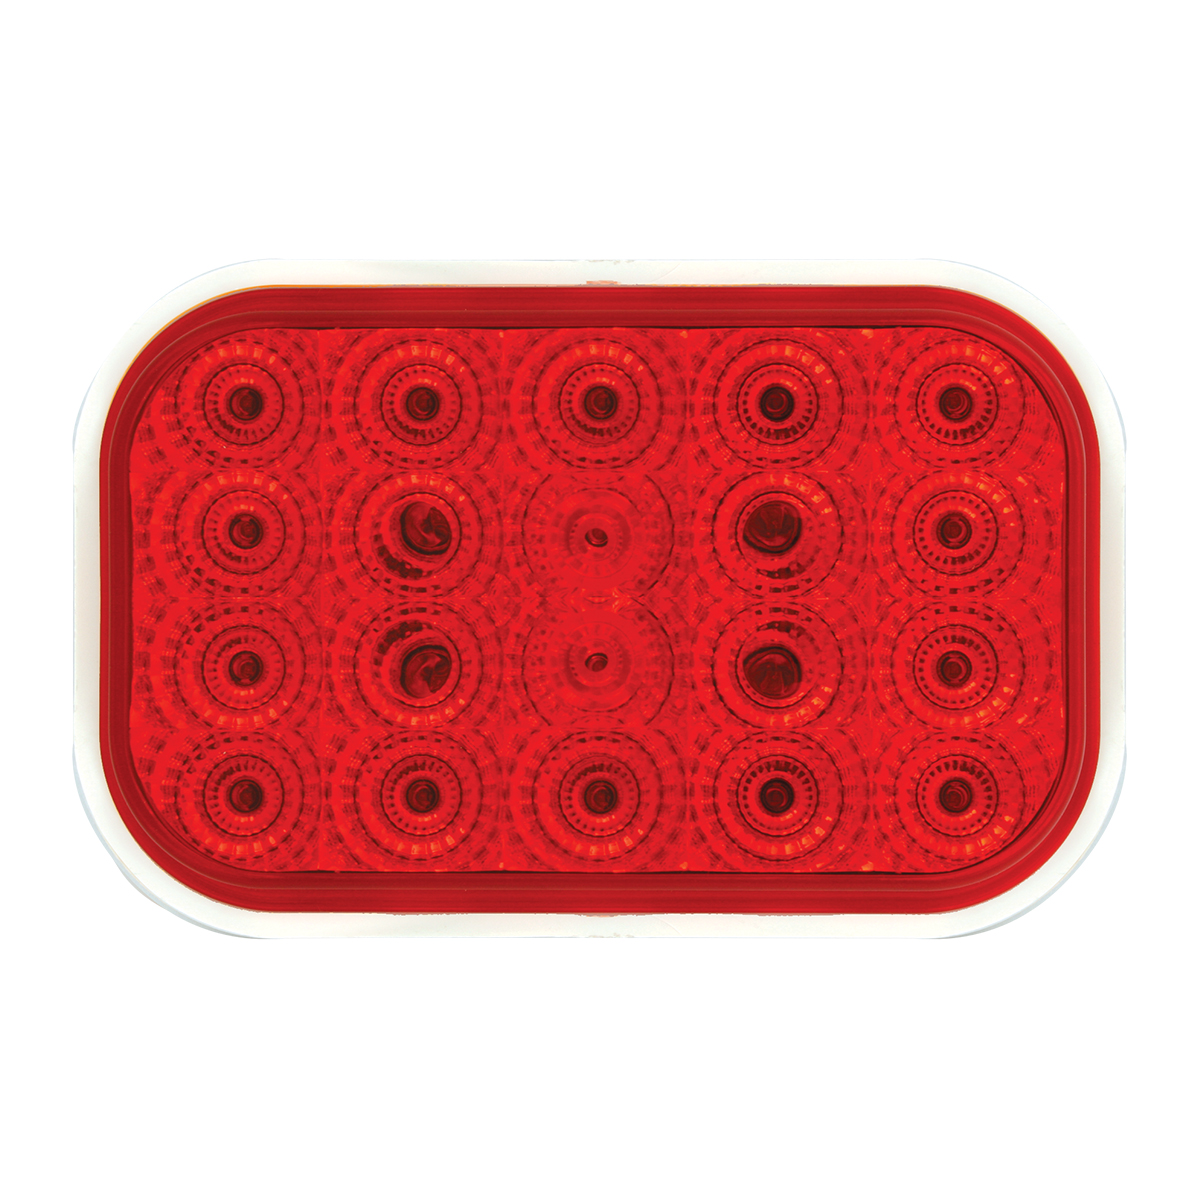 77013 Rectangular Spyder LED Light in Red/Red